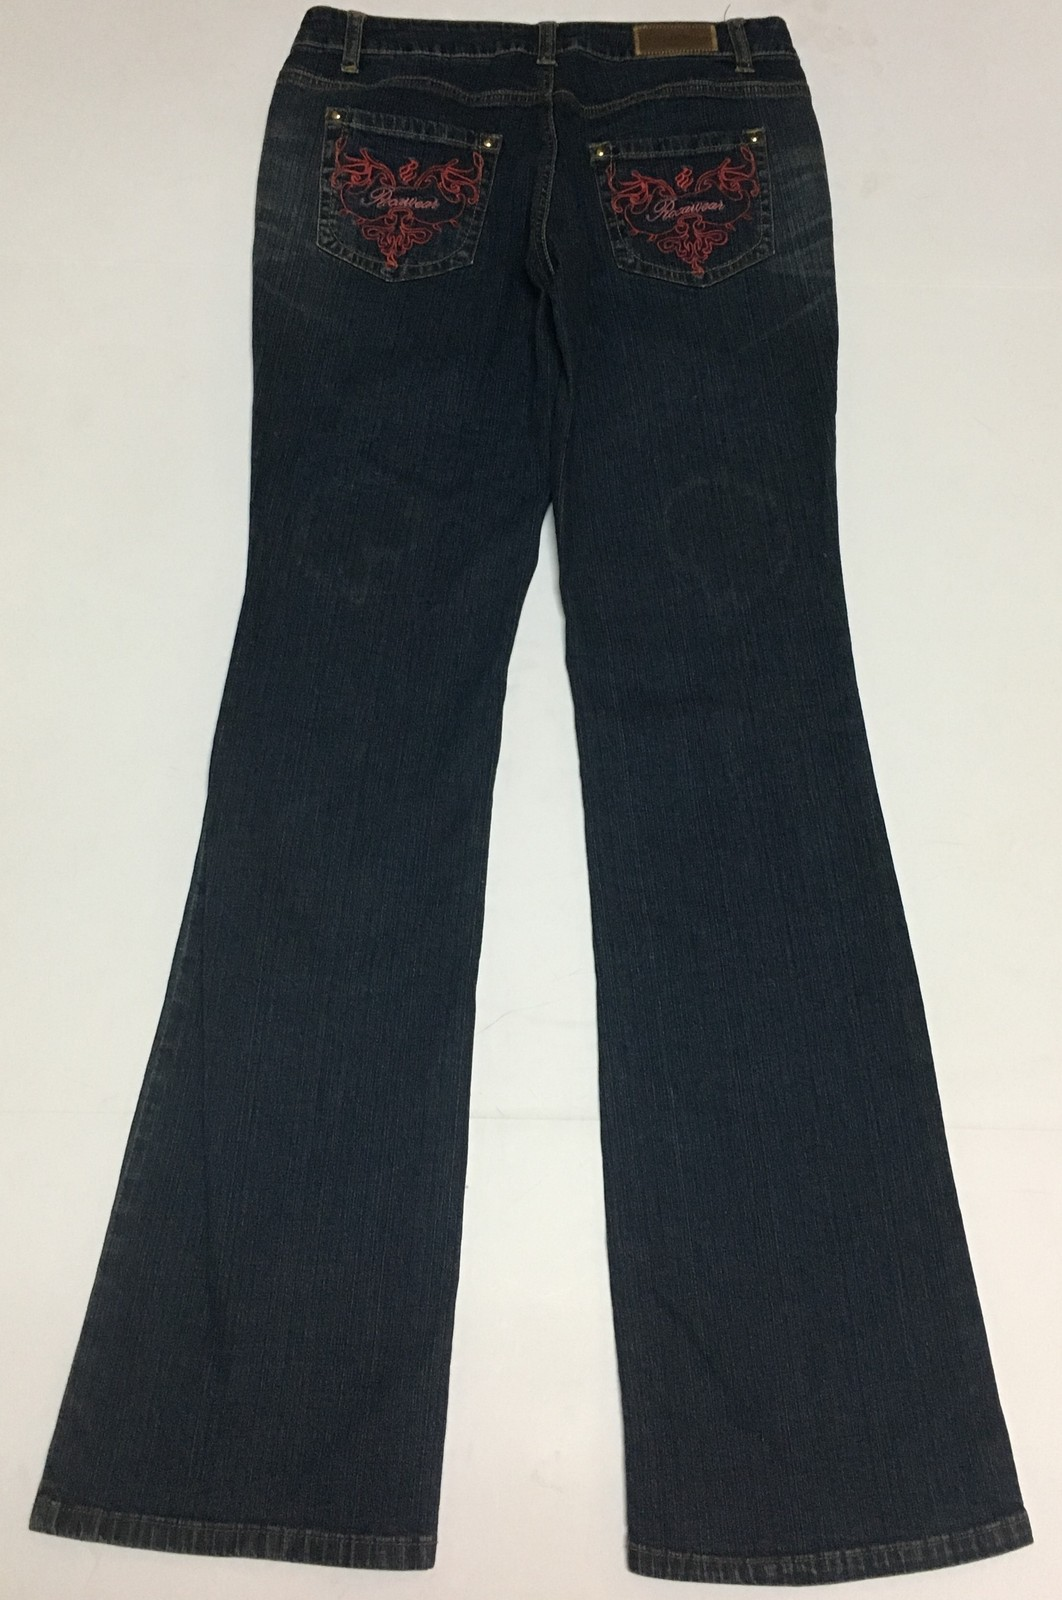 Rocawear Women's Jeans Sz 7 (28 x 32) Flare Embroidered NWT Dark Wash